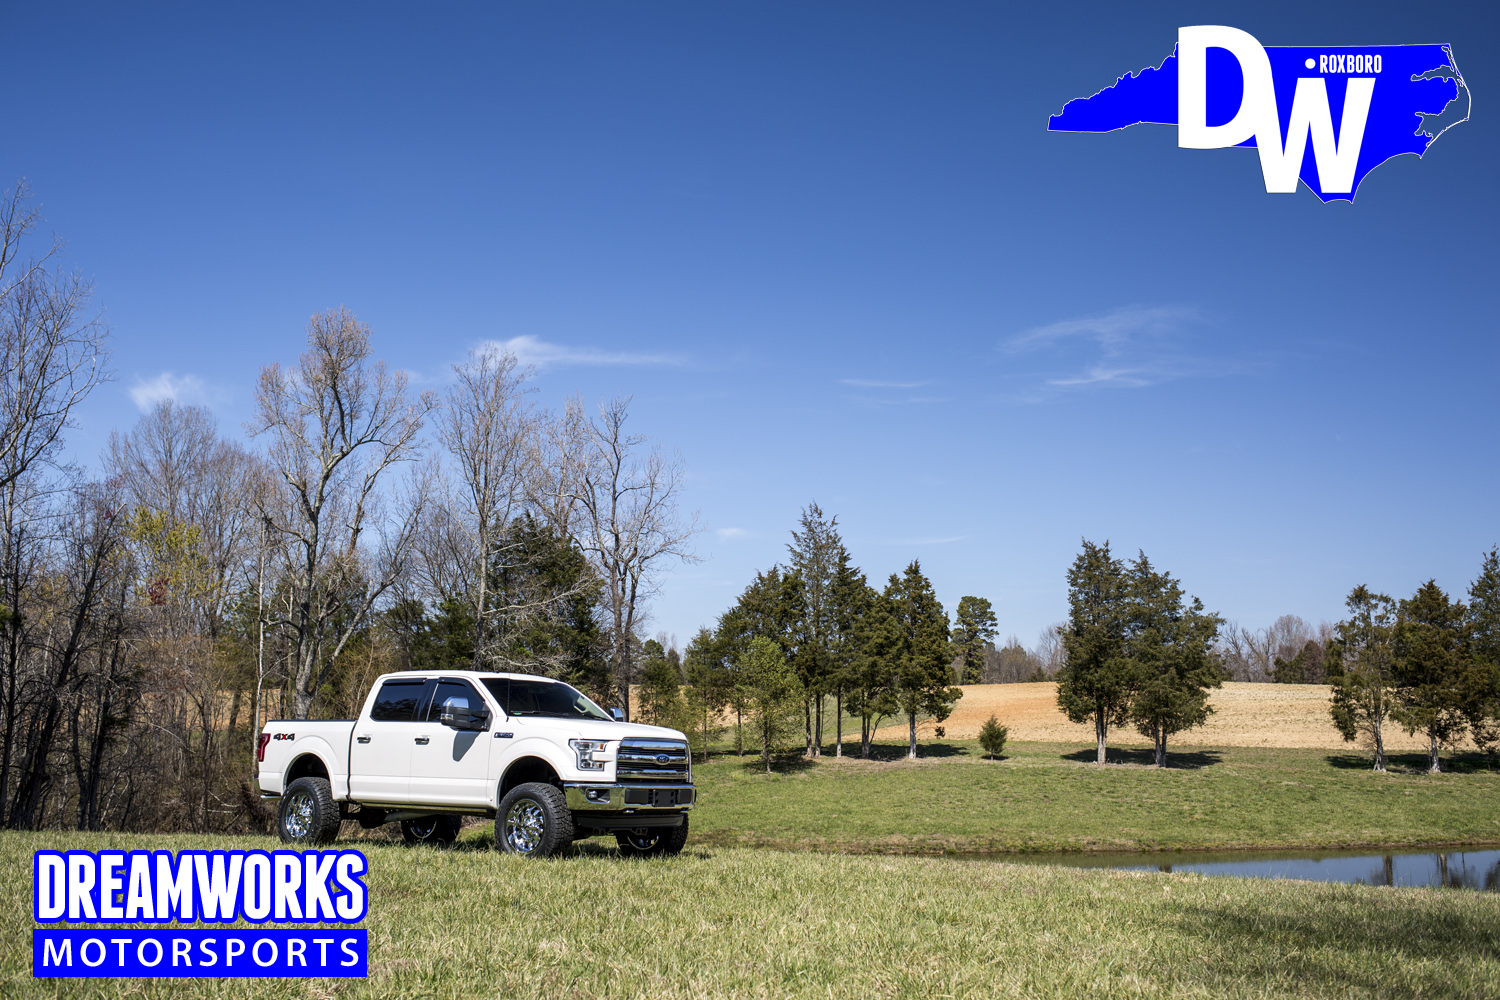 Ford_F150_By_Deamworks_Motorsports-1.jpg